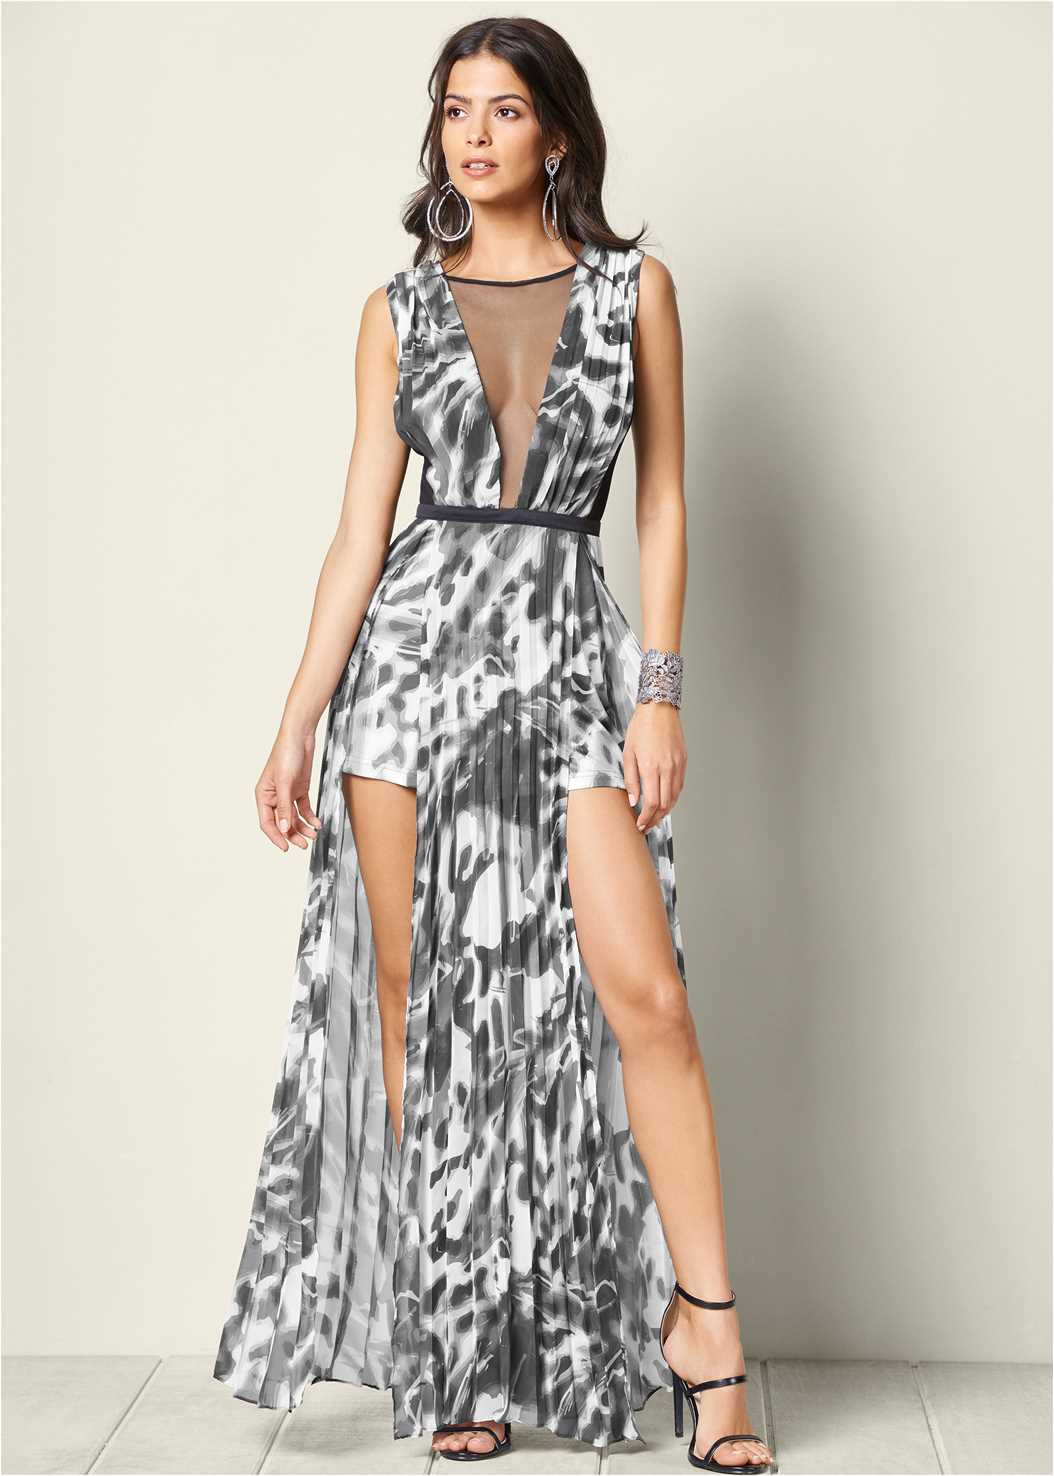 Animal Print Romper,High Heel Strappy Sandals